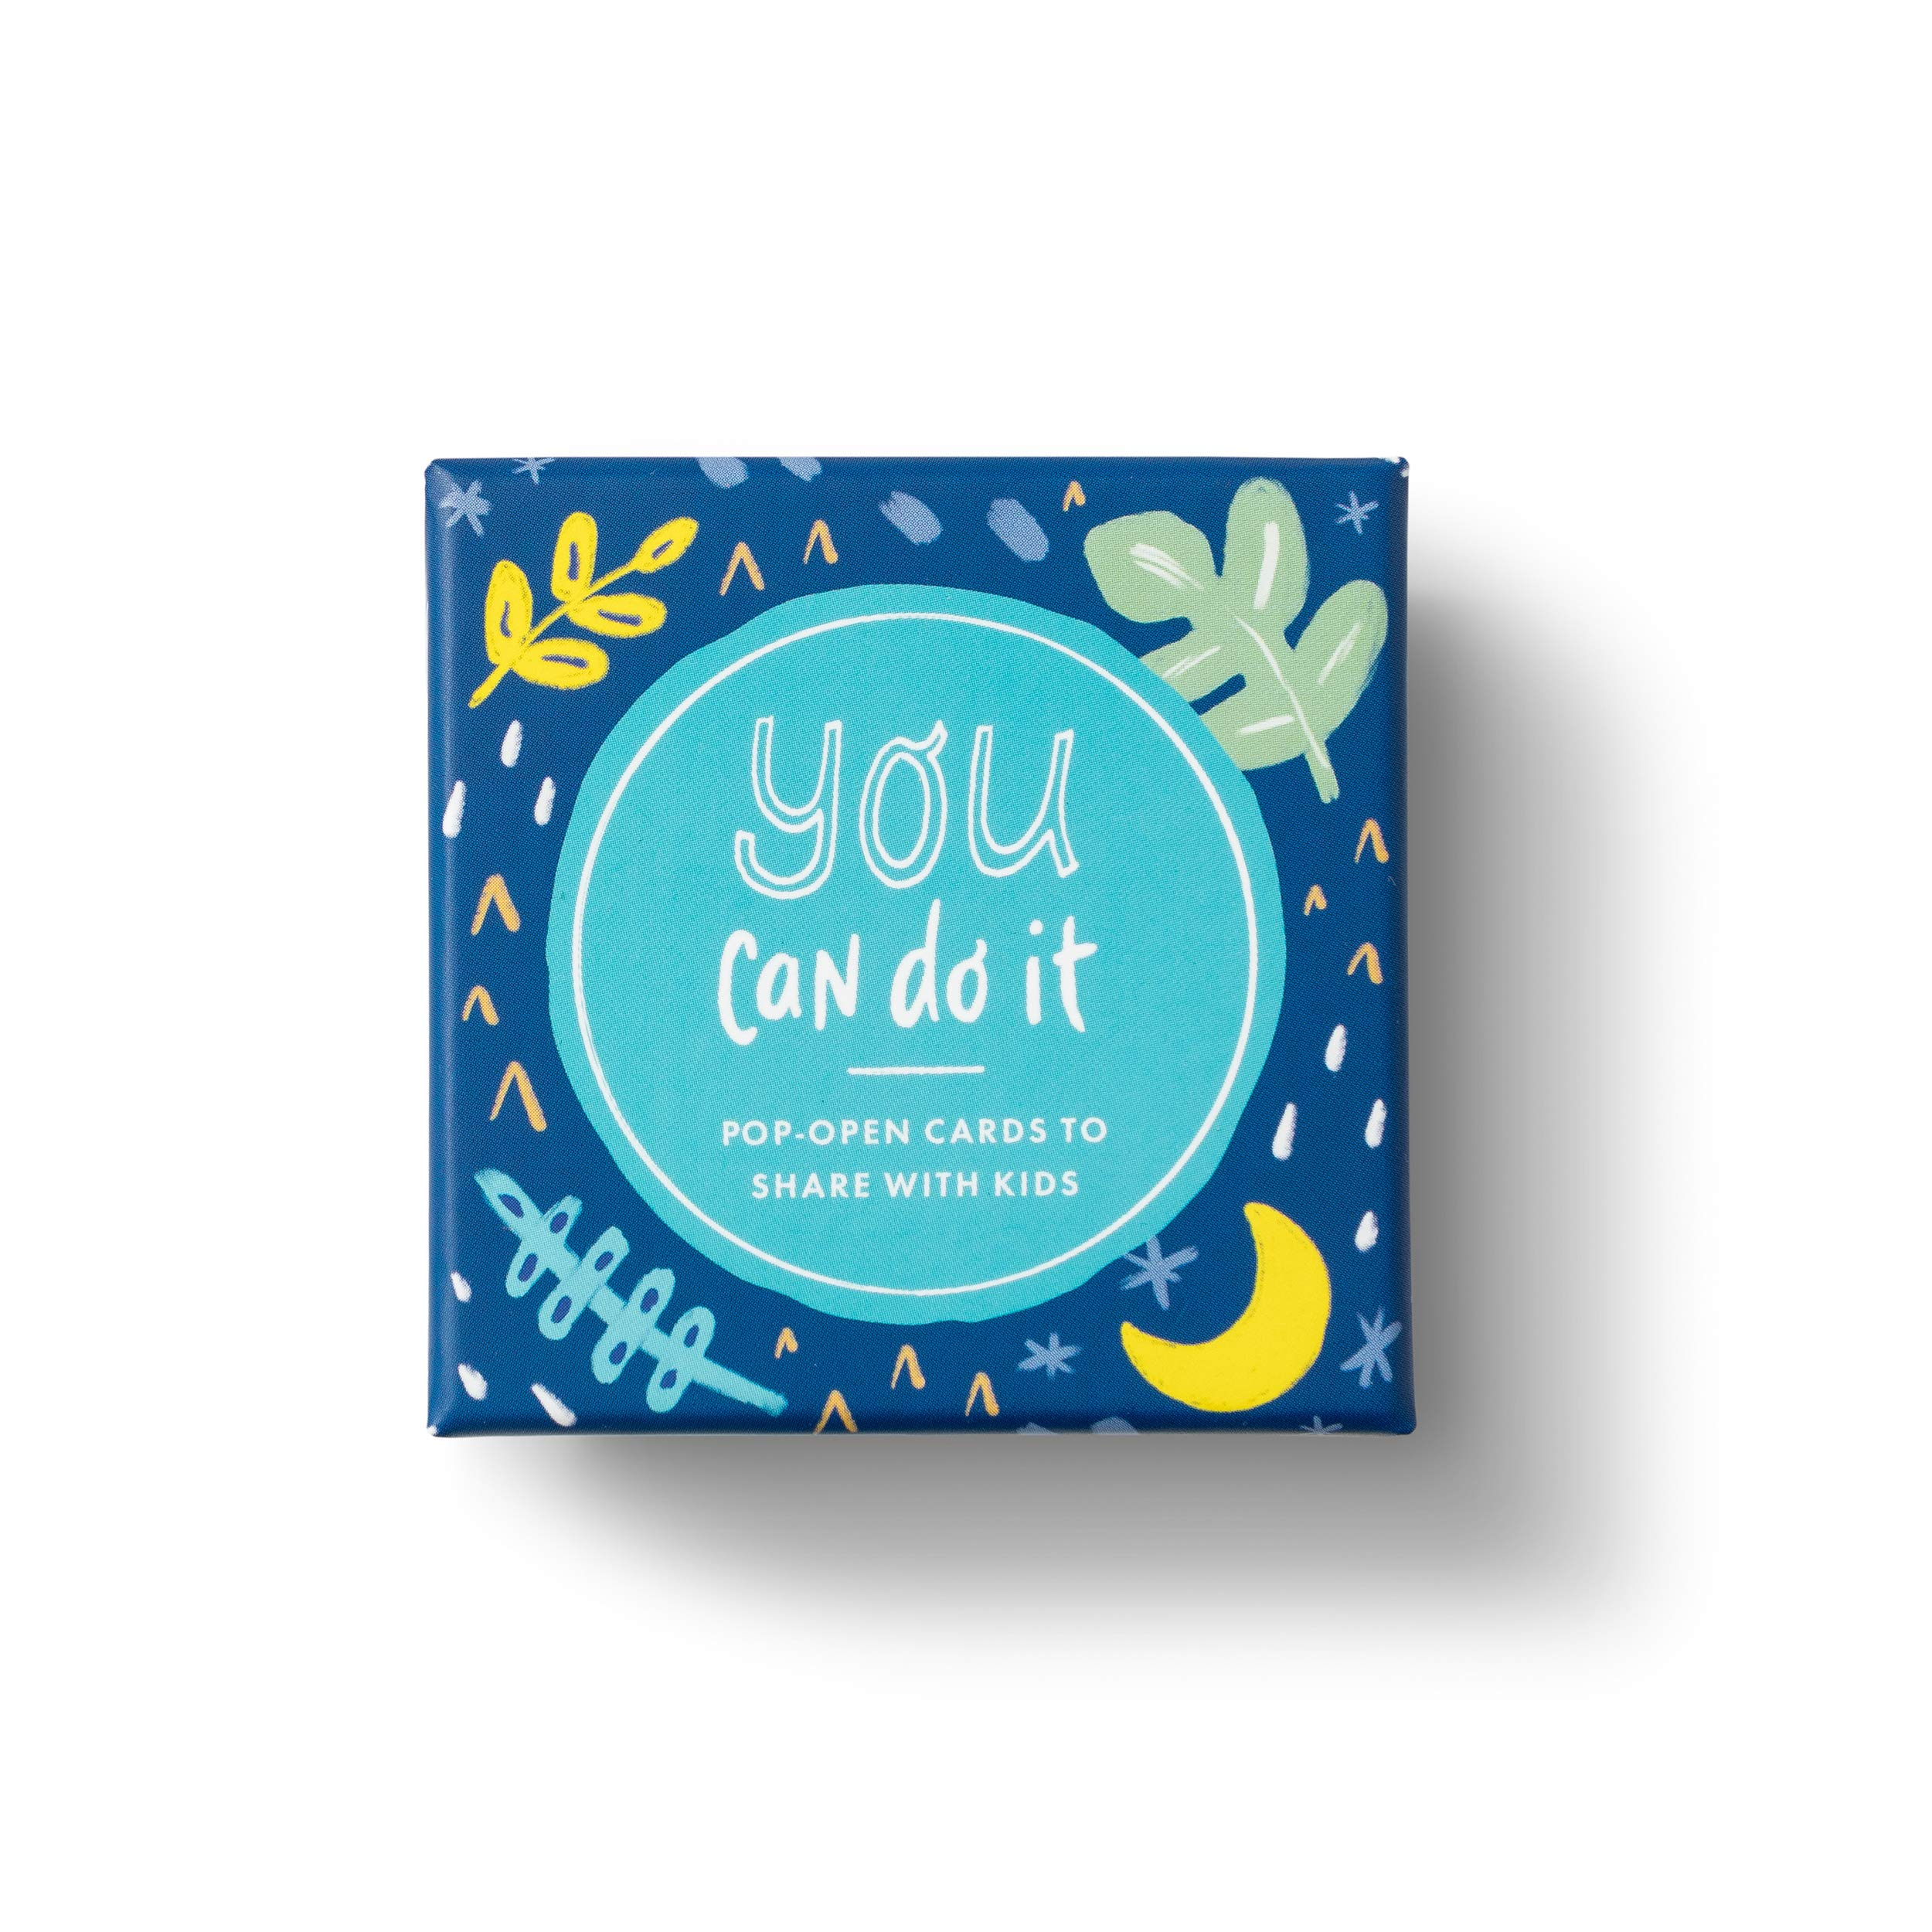 ThoughtFulls for Kids by Compendium: 3 Pack of Kids ThoughtFulls by Compendium (Image #4)